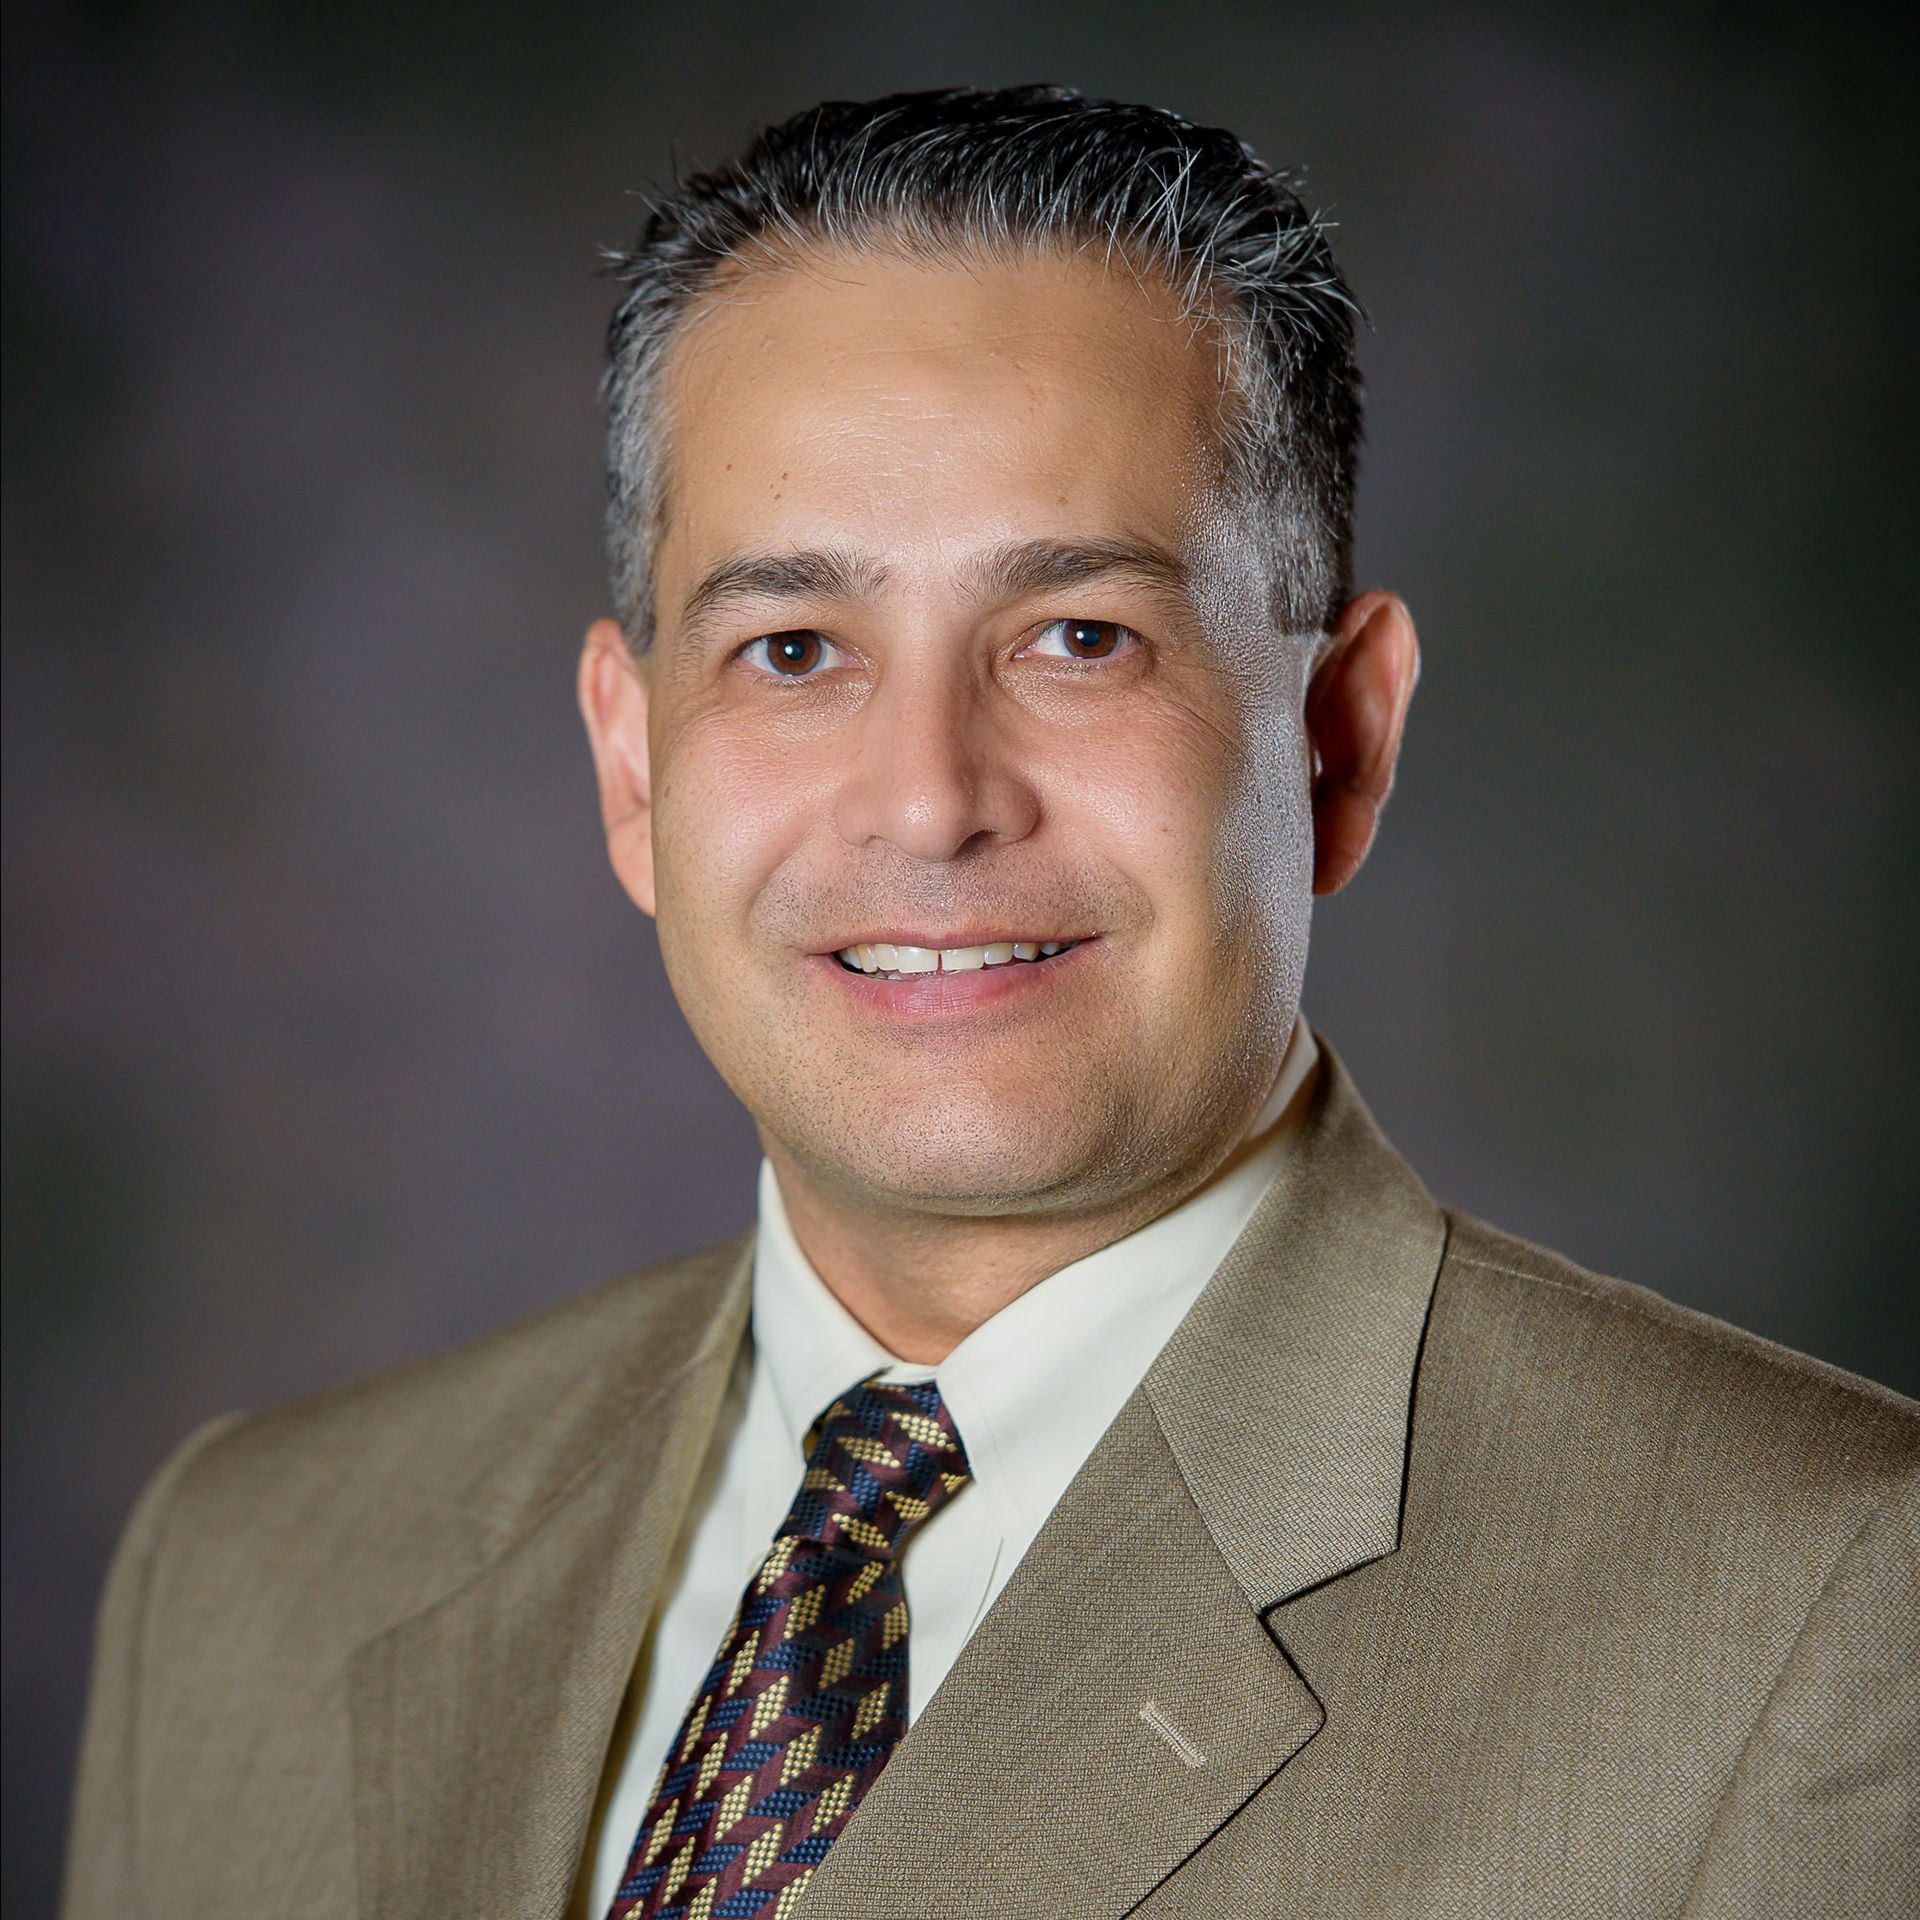 Human Services Association (HSA) Appoints New Chief Executive Officer (CEO), Ricardo Mota, Effective July 1st, 2021